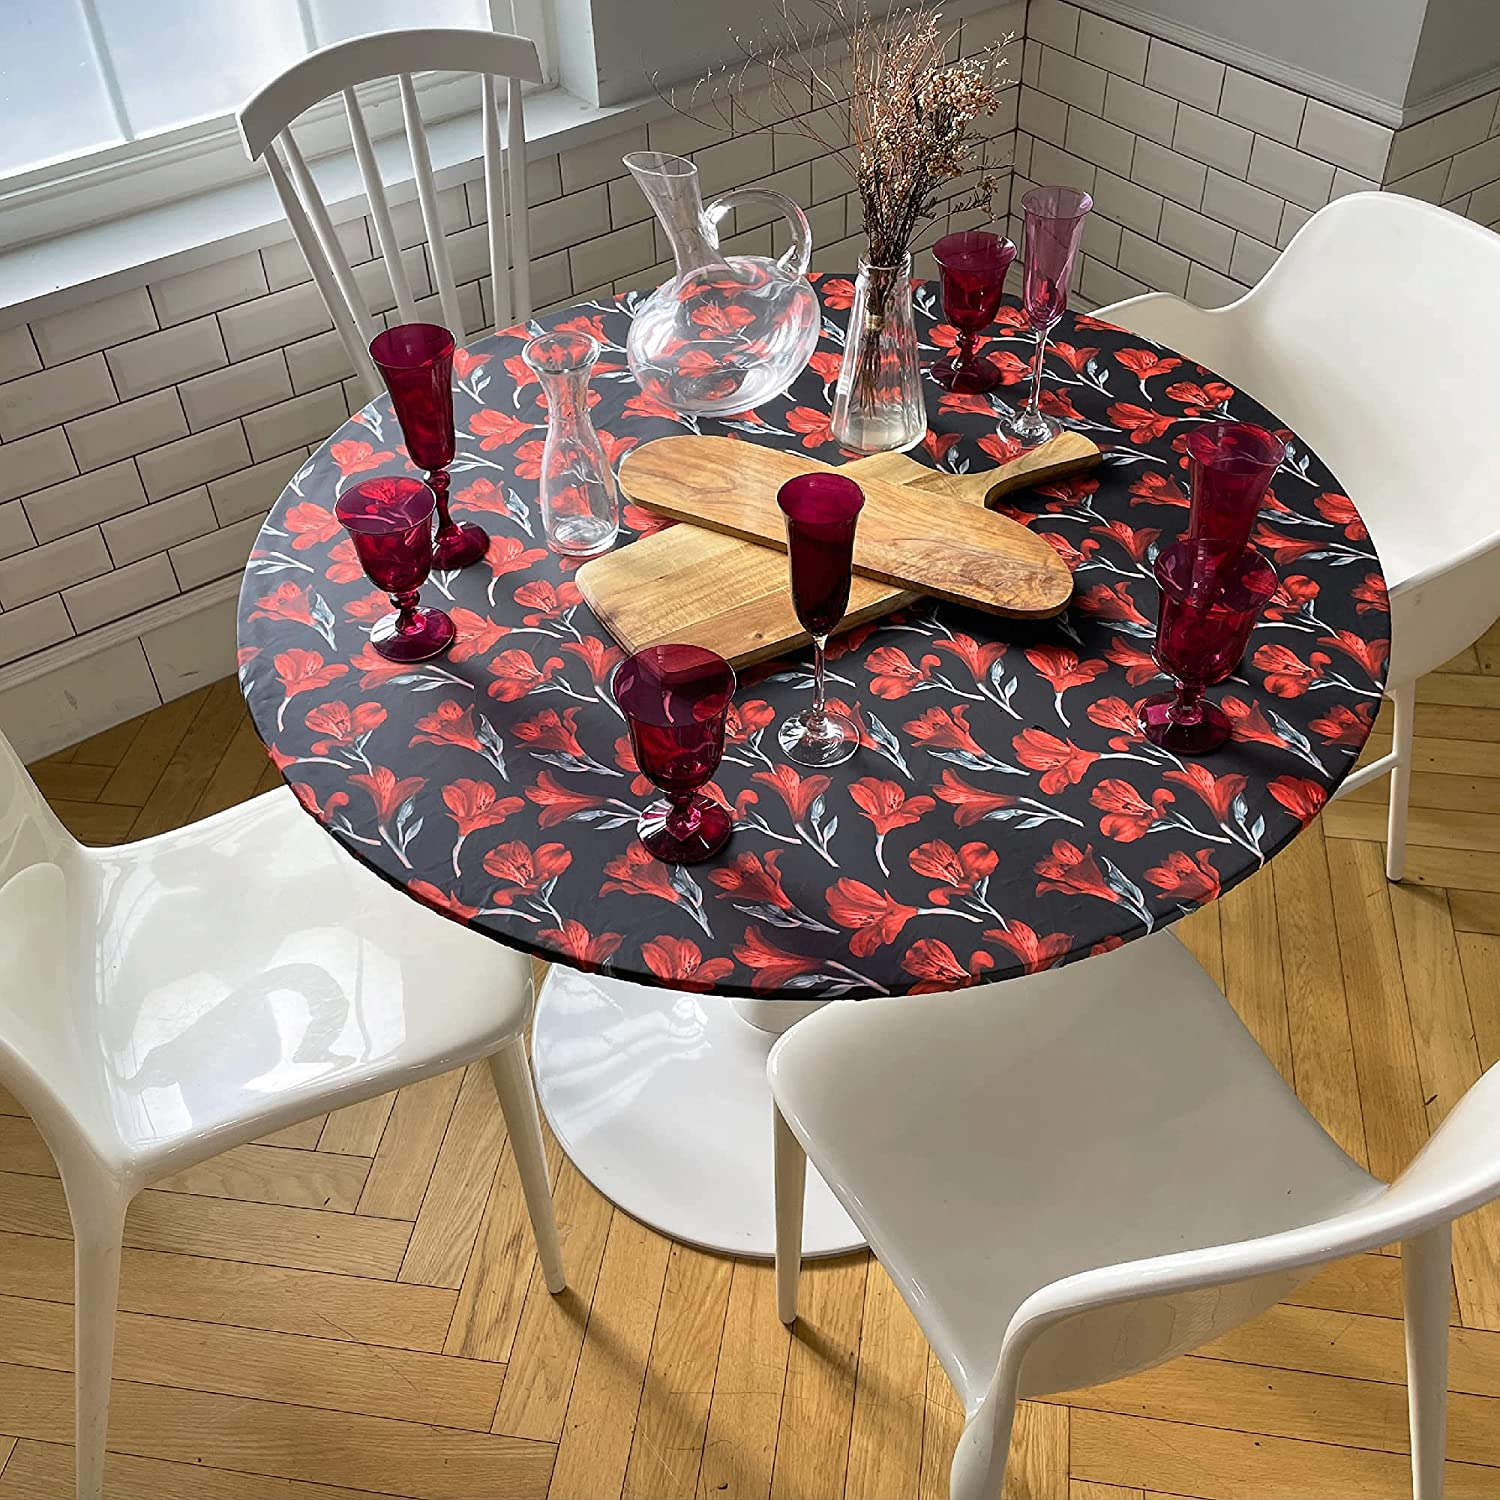 Buy HOLIZ Fitted Round Table Cloth Washable Tablecloth – Table ...